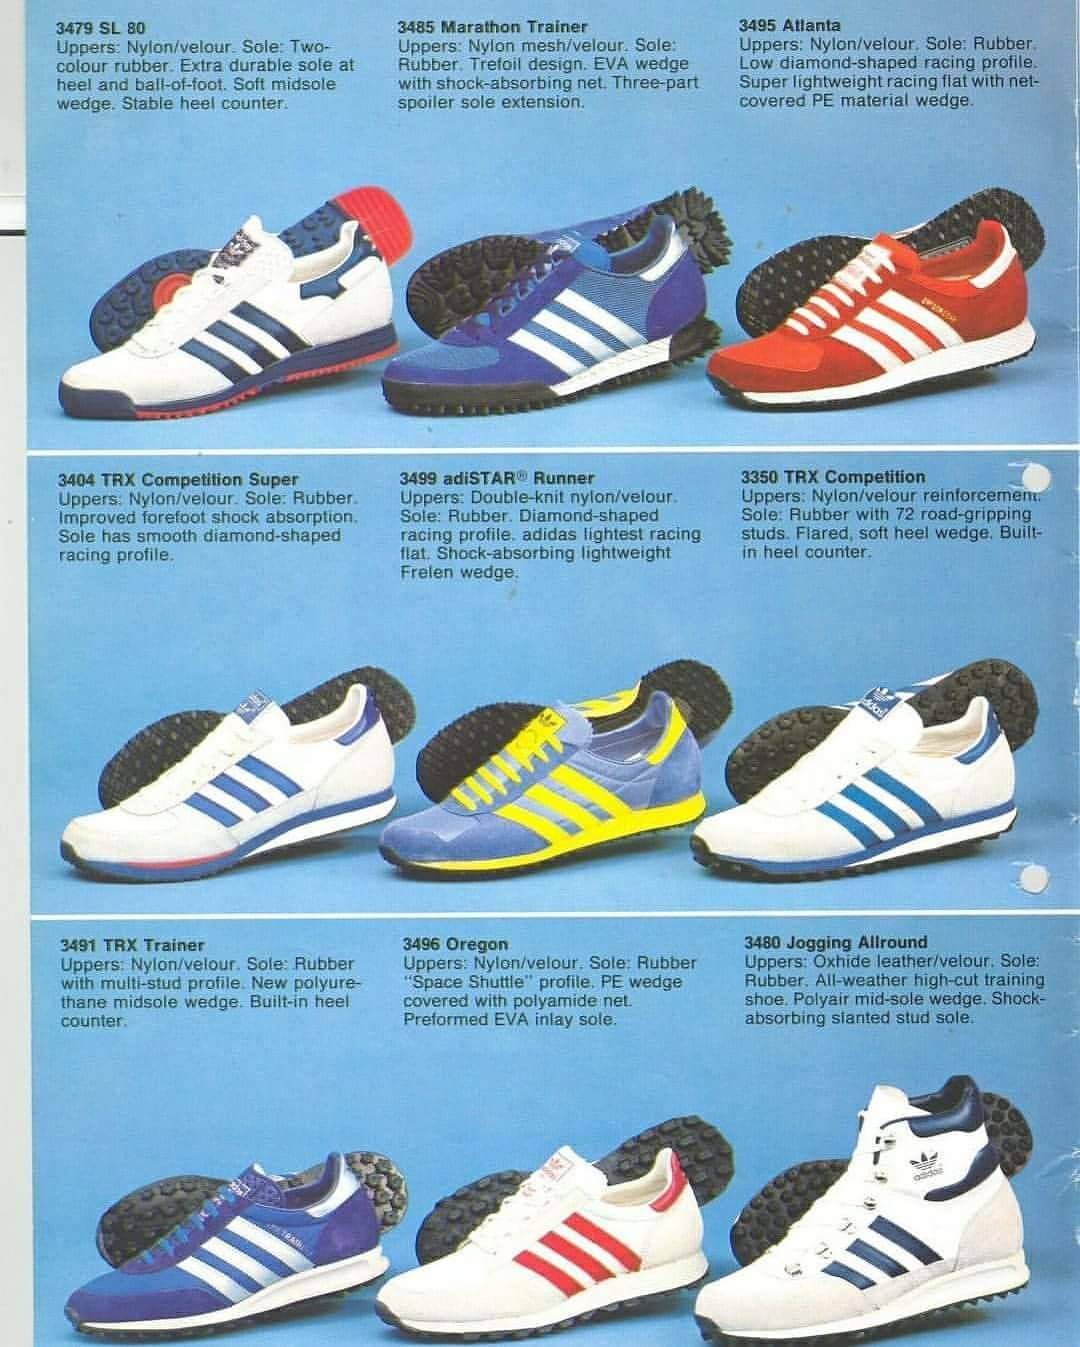 LoveRopa NikeVintage Adidas Adidas 2019 Sneakers In sQthrCxd